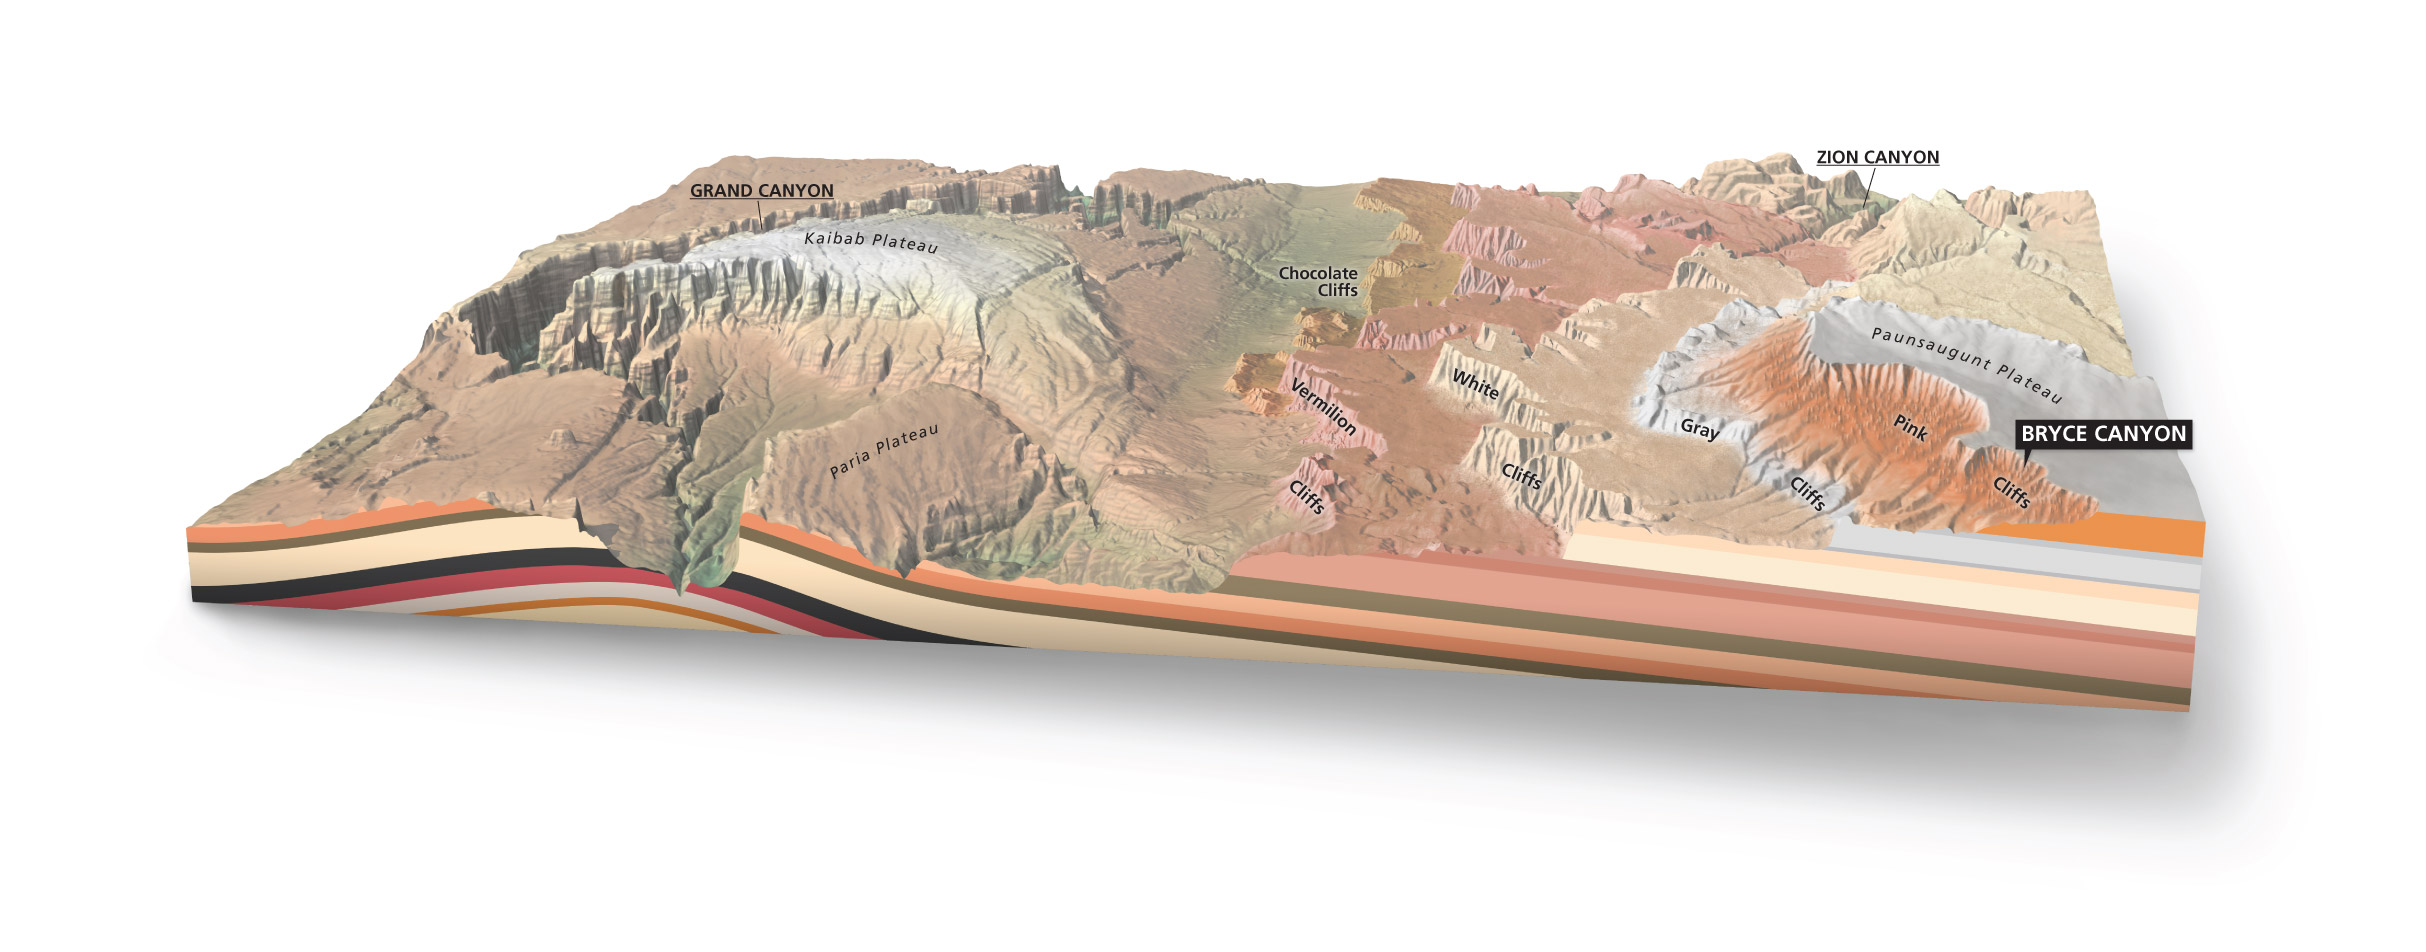 Bryce Canyon Geologic Diagram